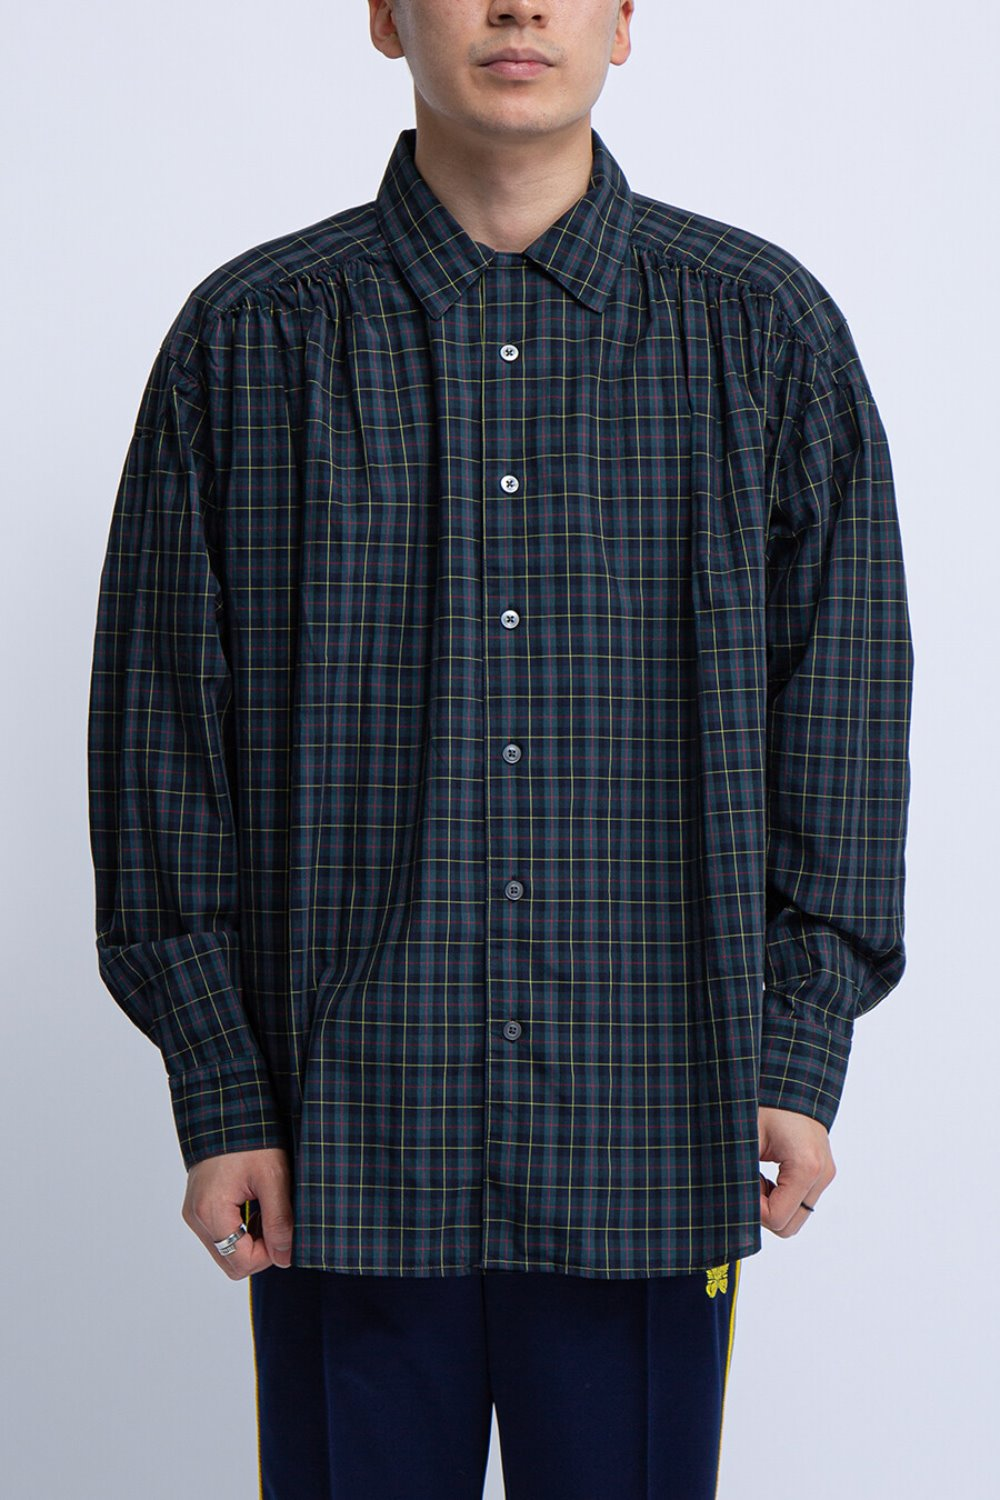 PAINTER SHIRT HUNTER GREEN COTTON PLAID